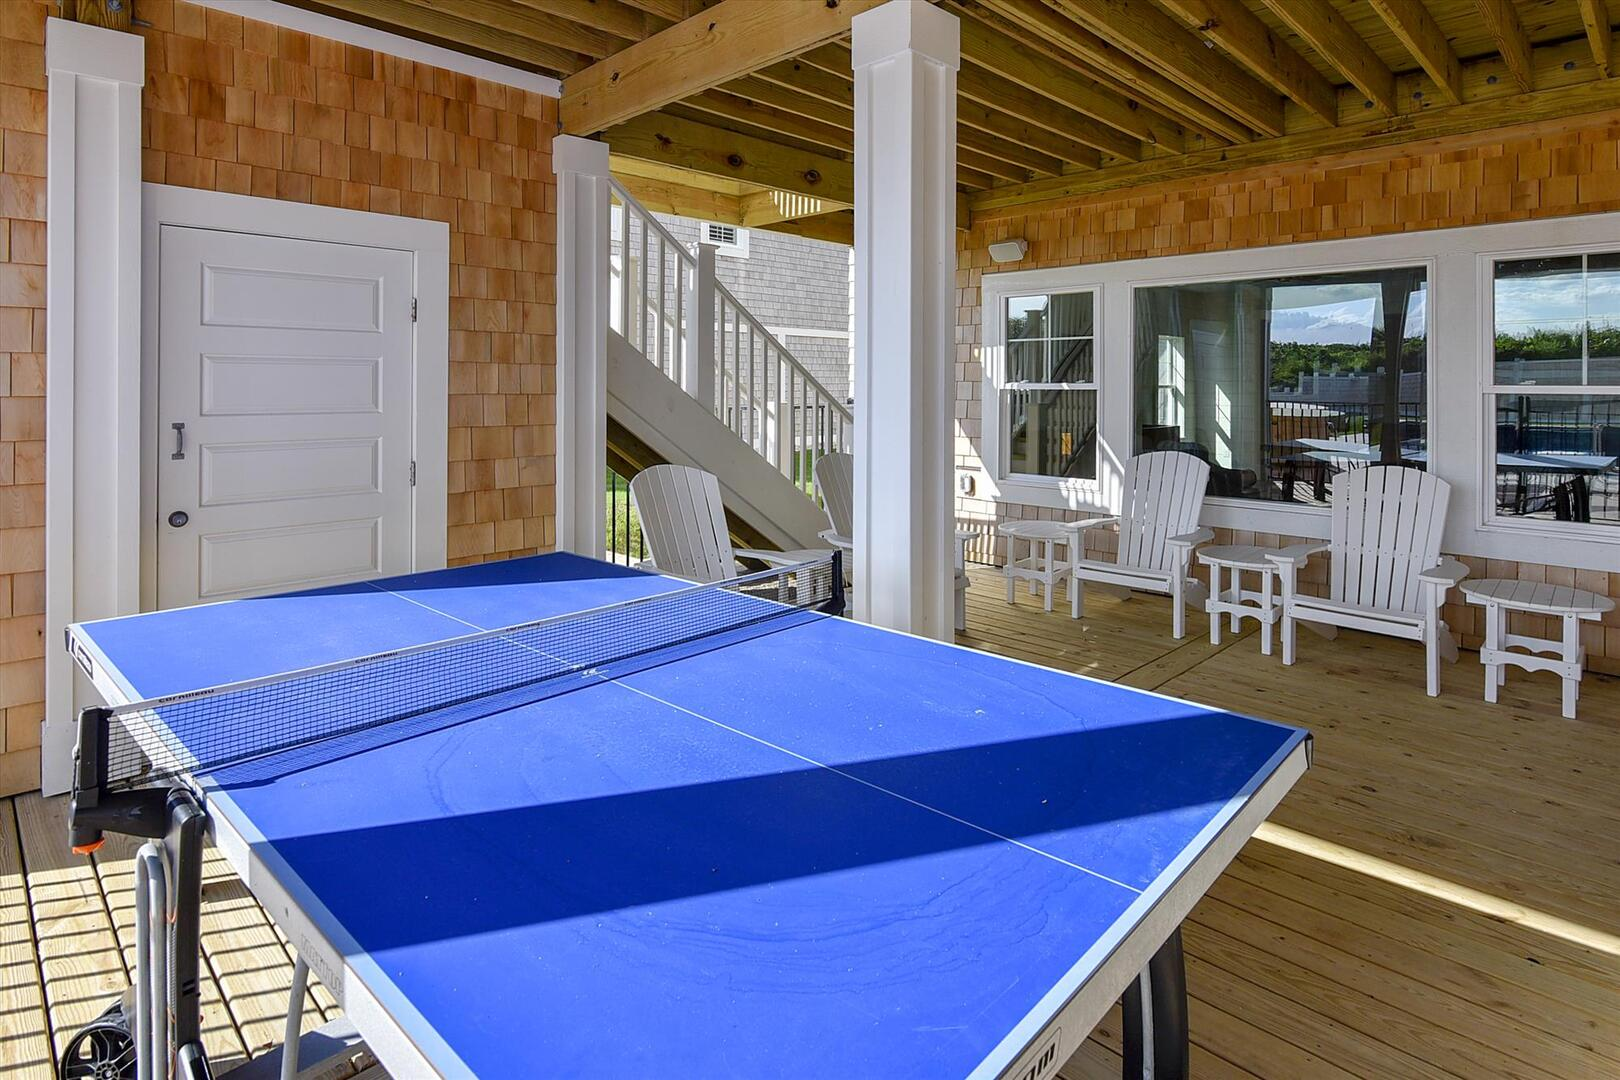 Pool Level,Covered Patio,